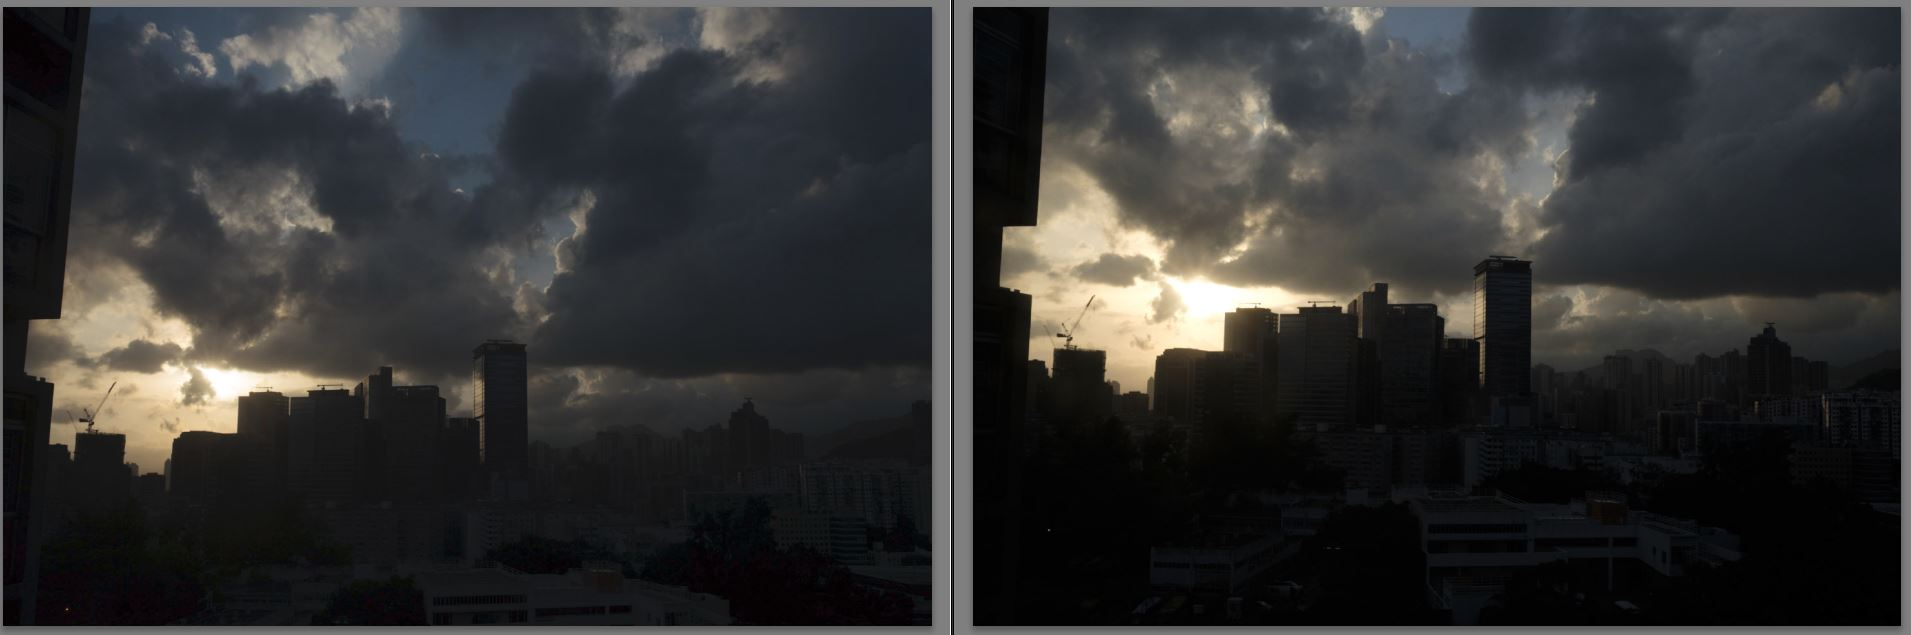 Both Compared (screen grab from Lightroom)